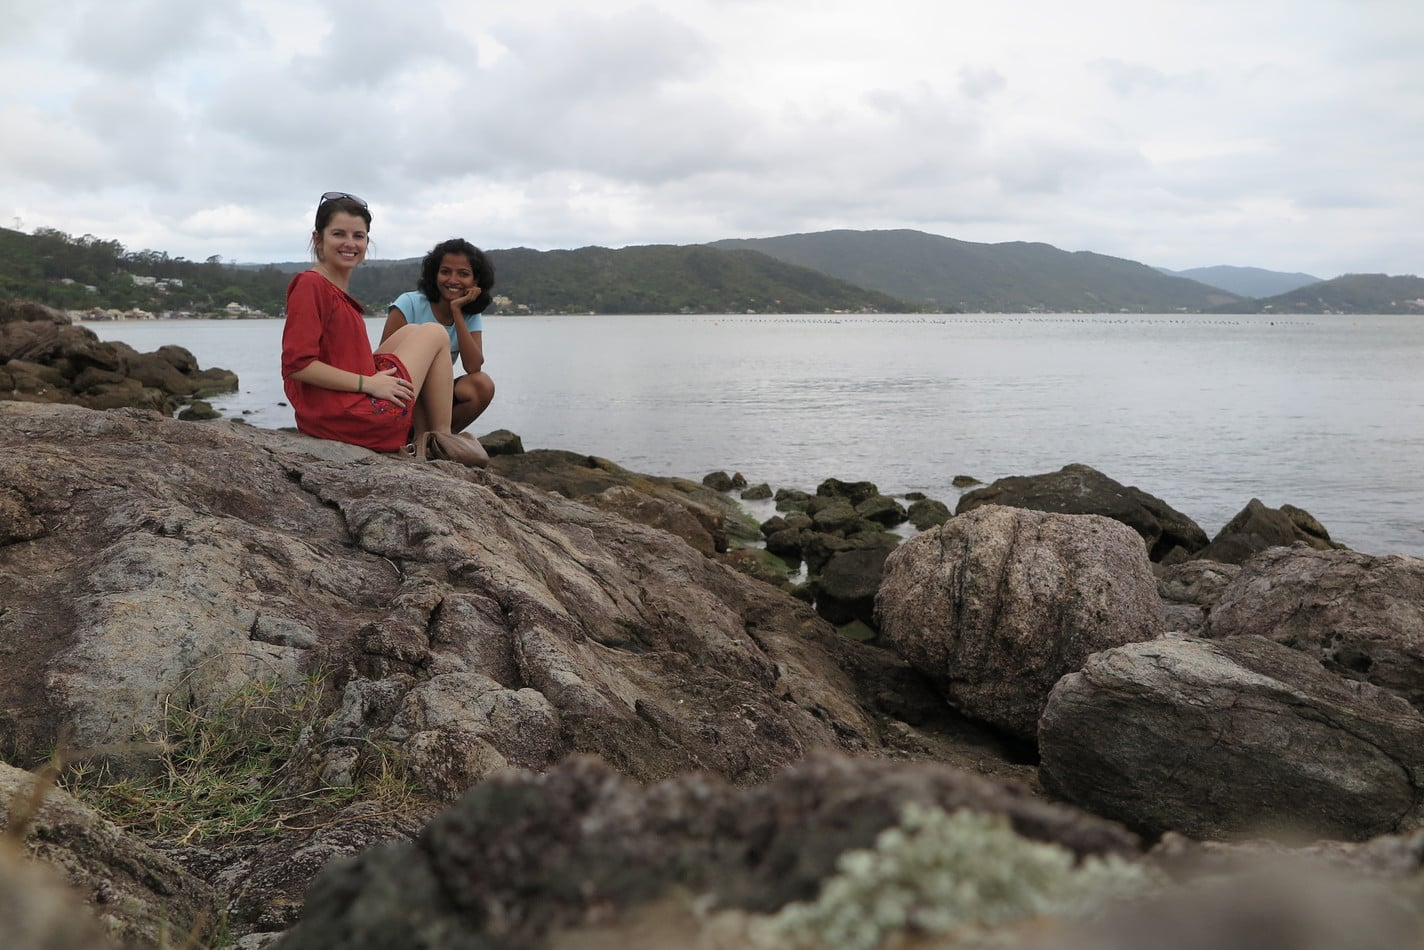 Two women sitting on rocks by the beach